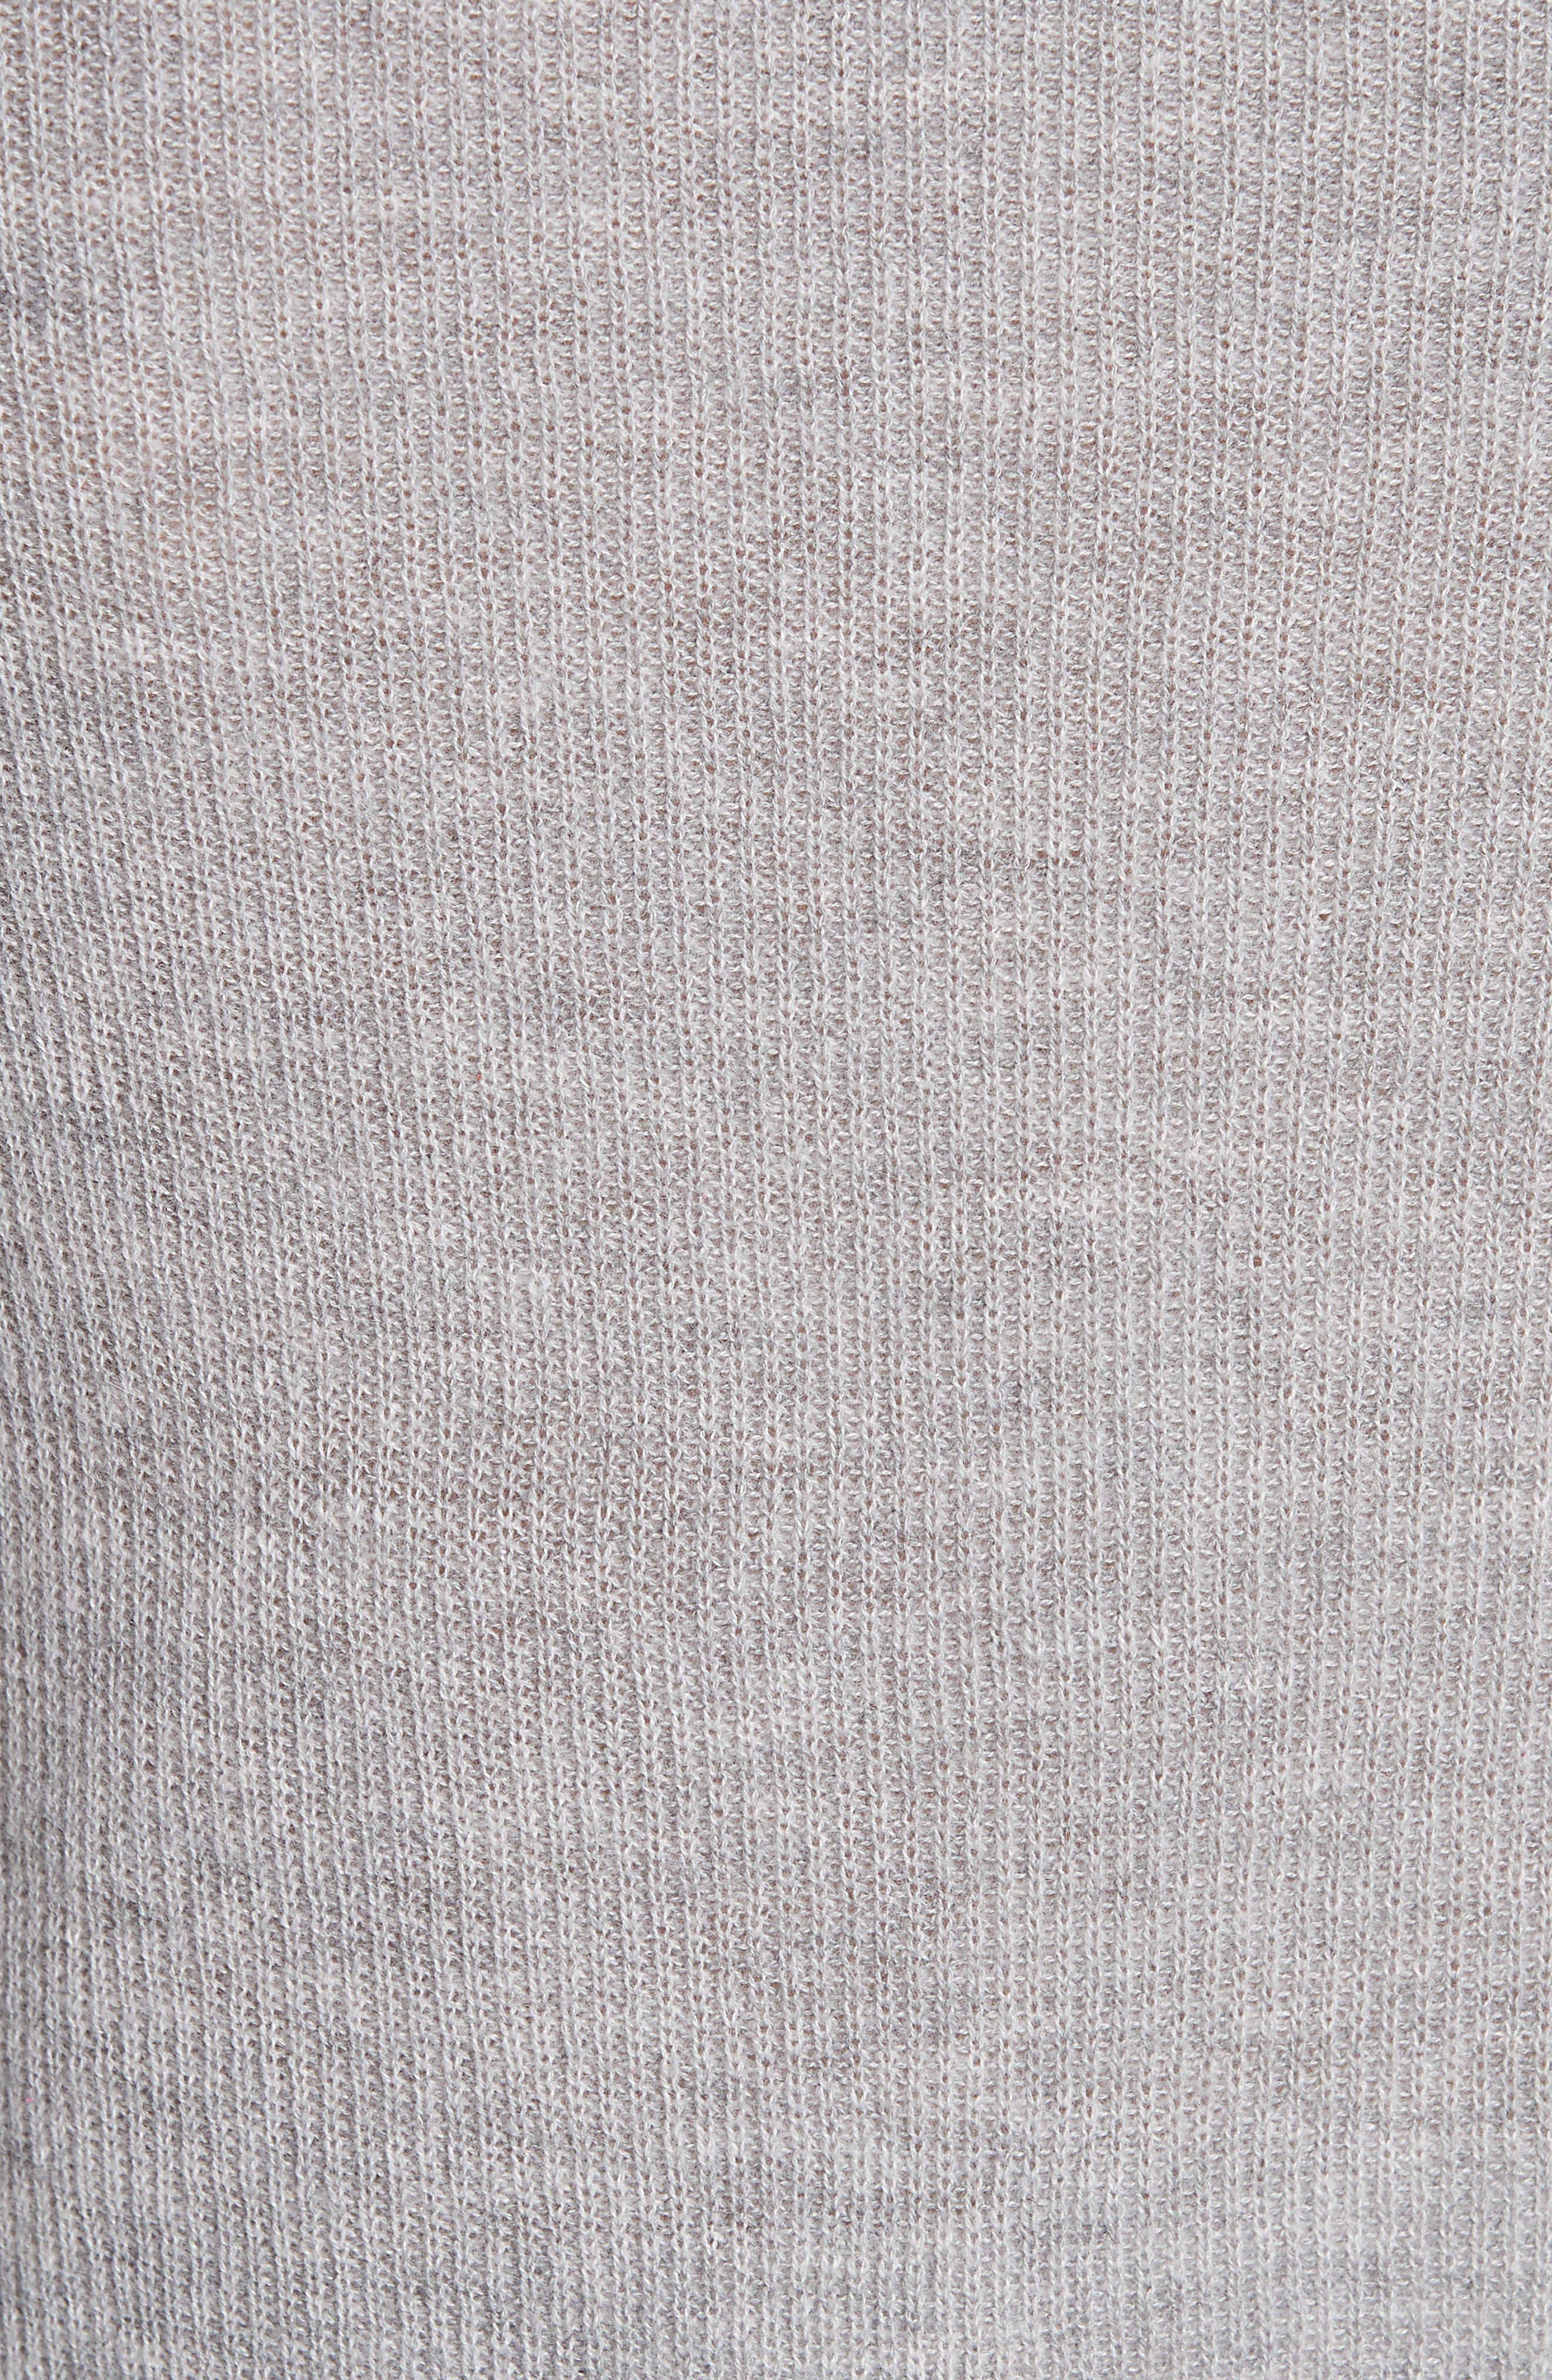 Ribbed Cashmere Sweater,                             Alternate thumbnail 5, color,                             H STEEL